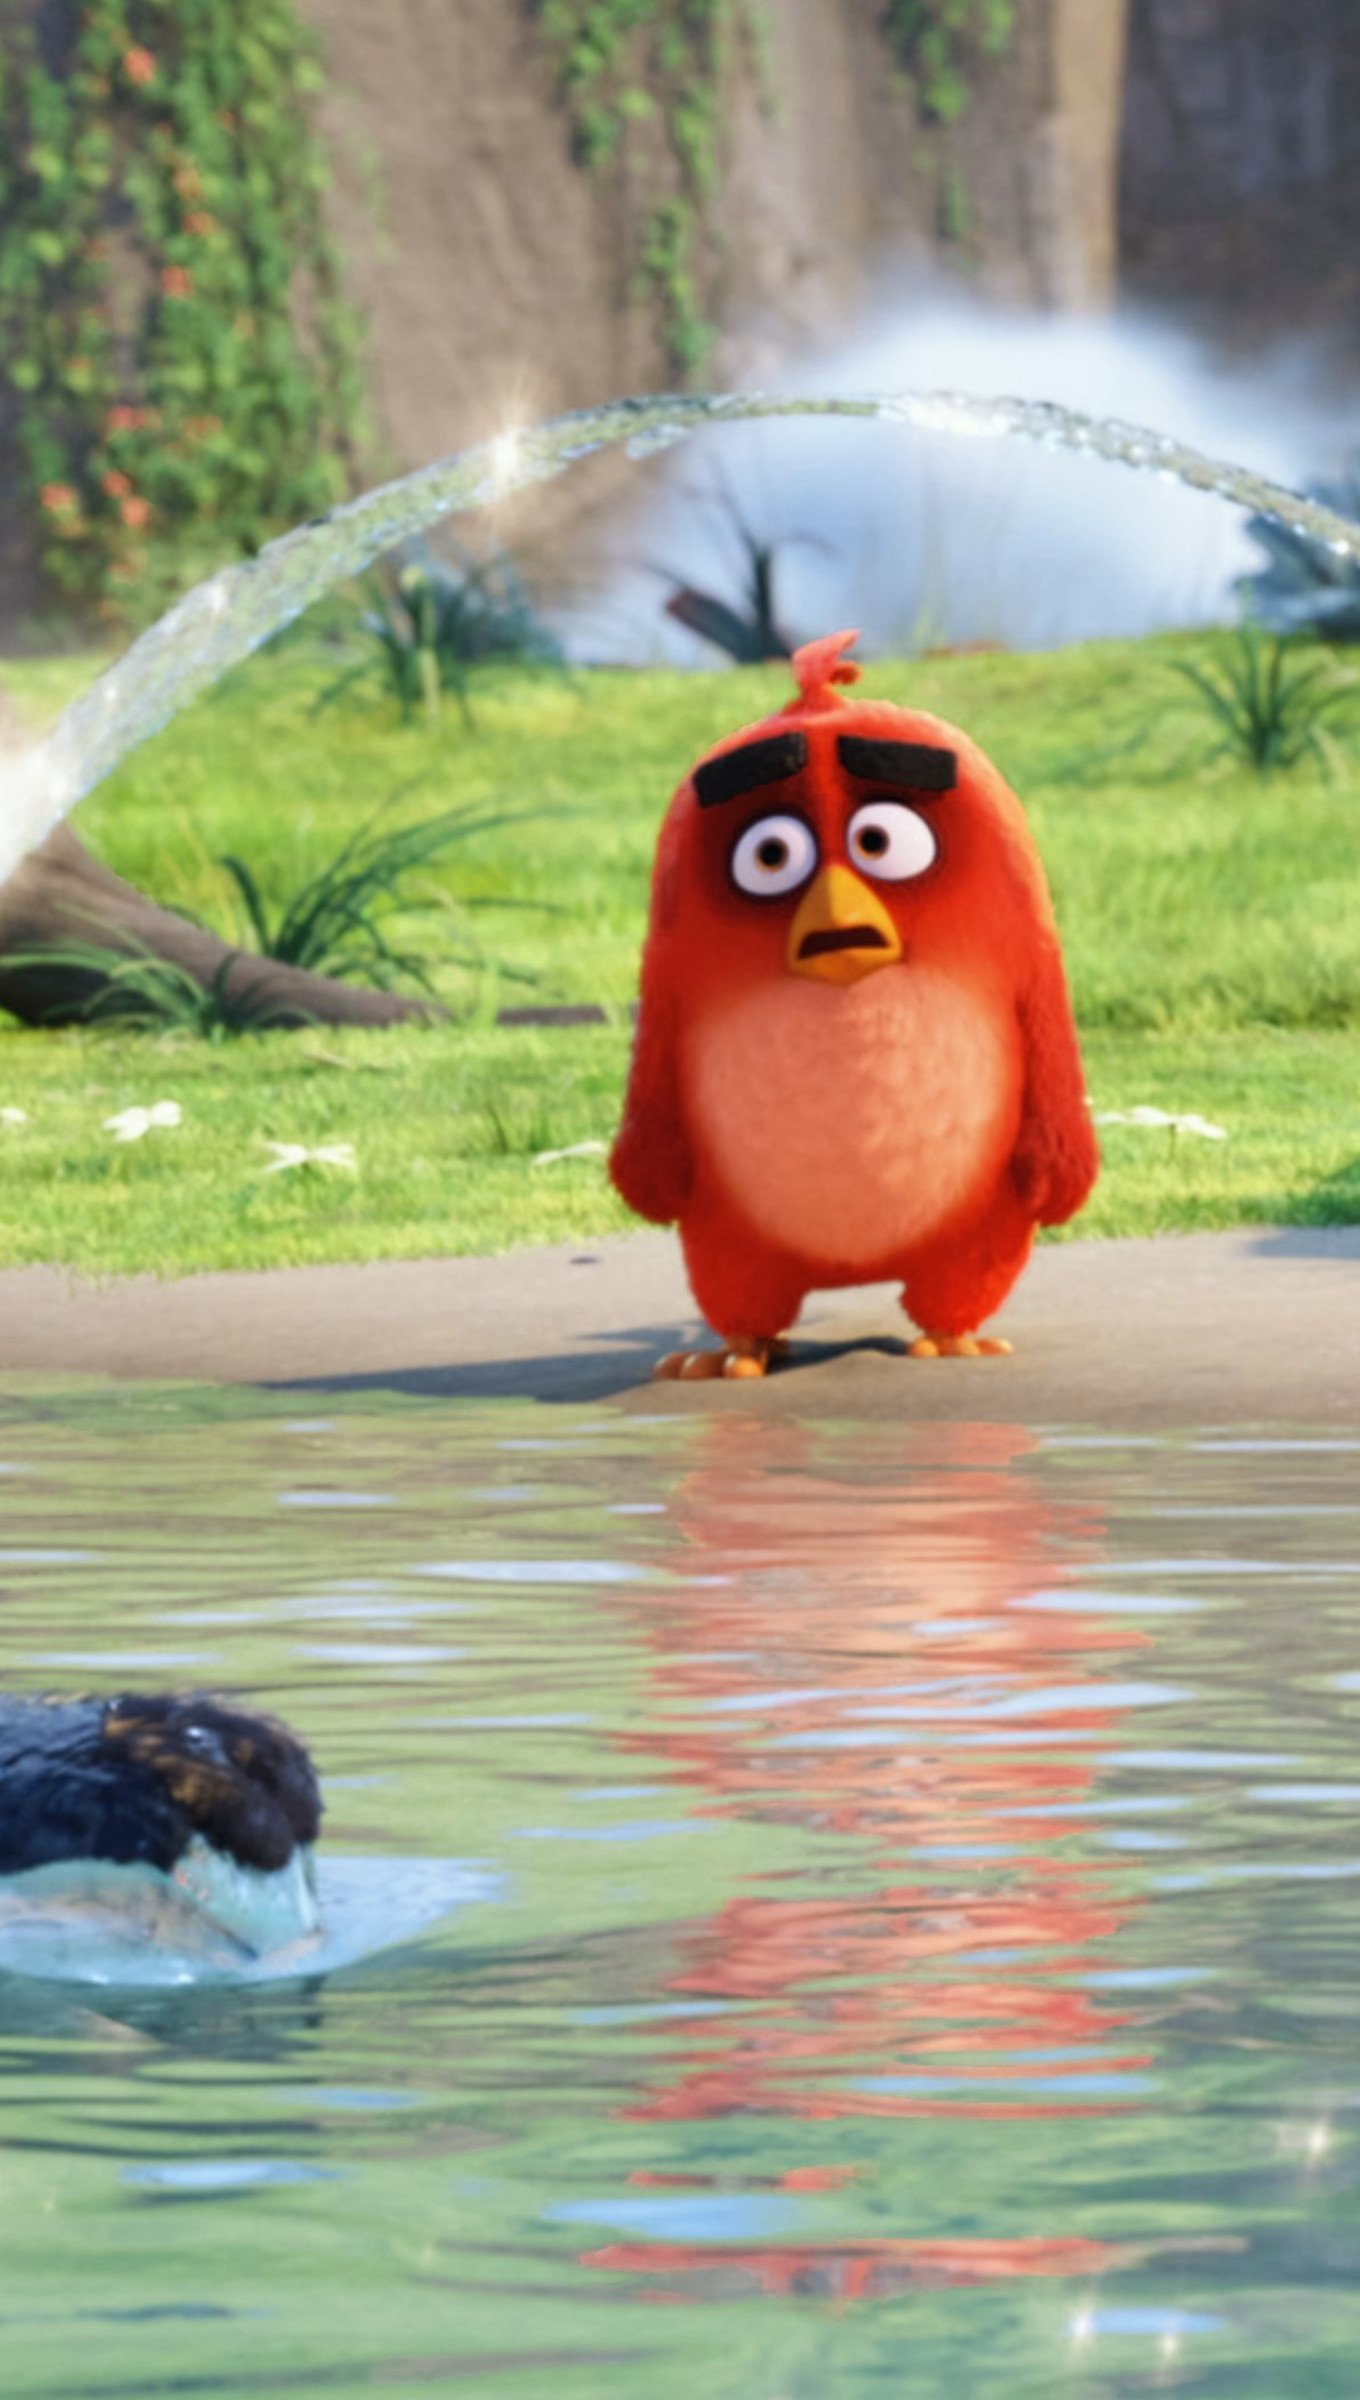 Wallpaper Red, Chuck and Bomb from  Angry Birds in the water Vertical